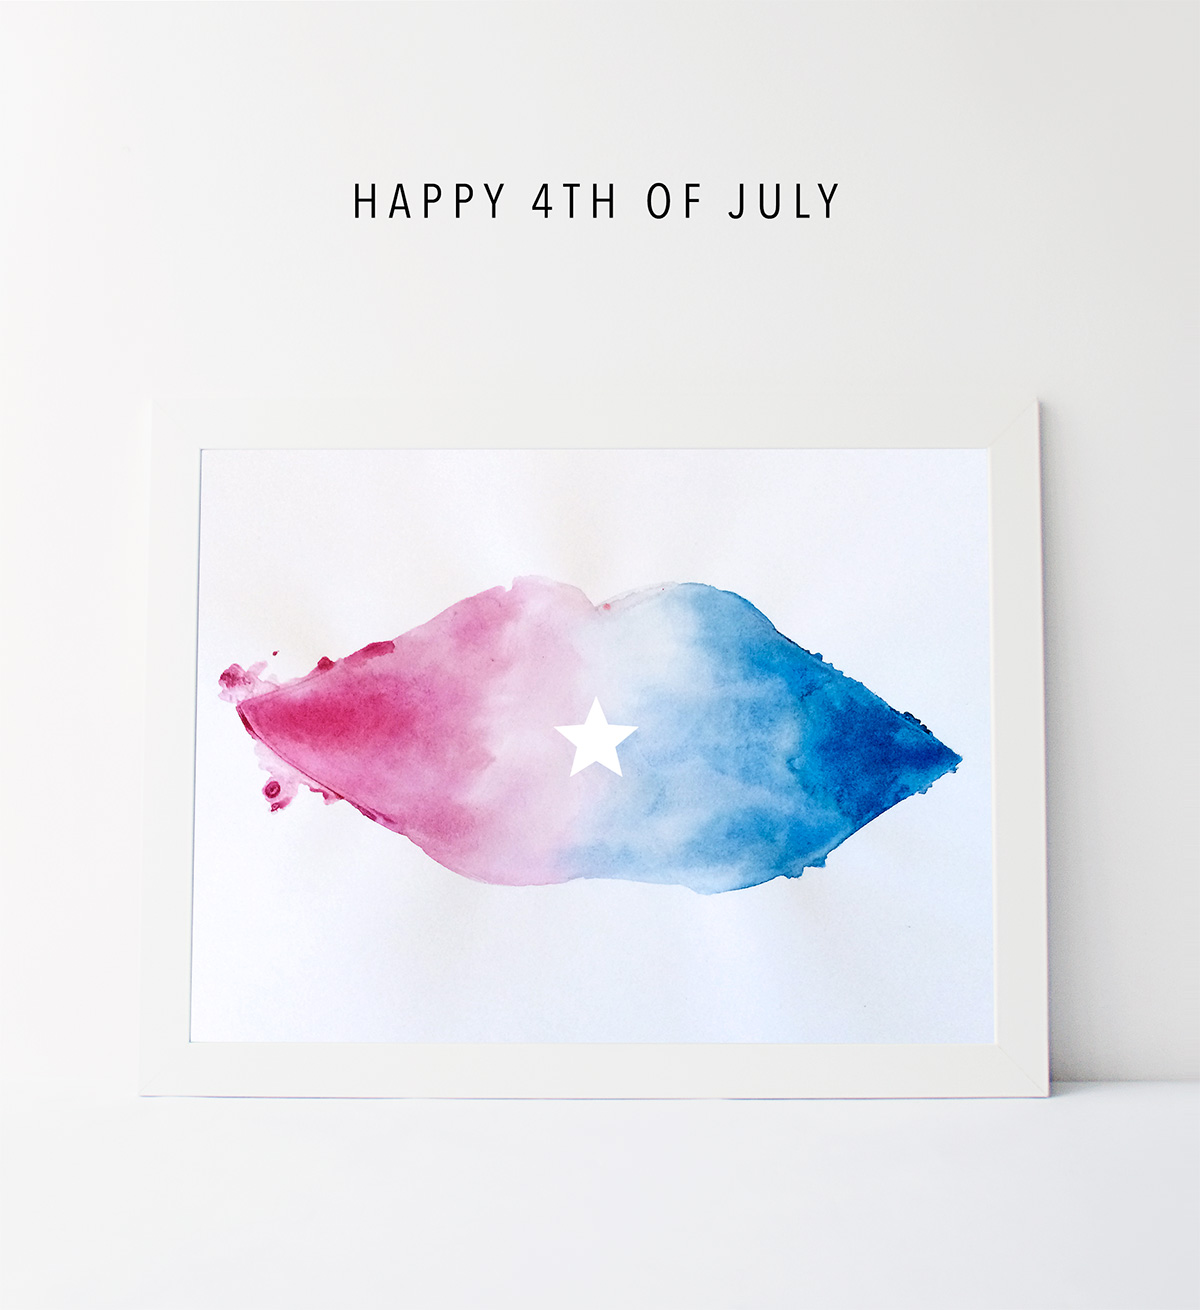 Happy 4th of July watercolors